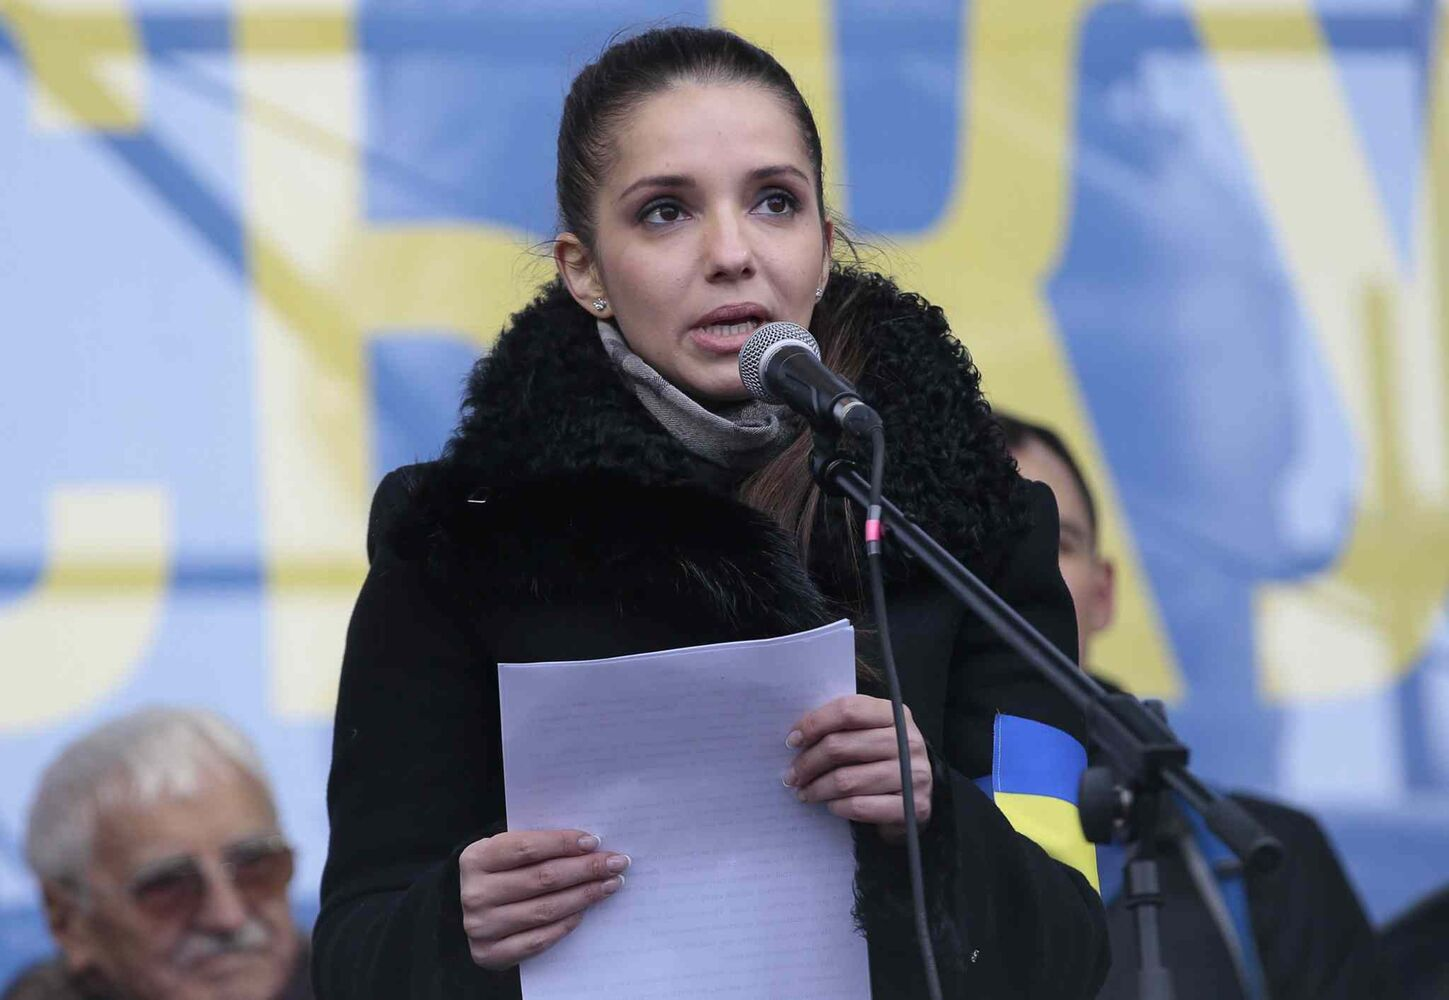 Eugenia Tymoshenko, daughter of jailed Ukrainian former prime minister Yulia Tymoshenko speaks to Pro-European Union activists during the rally. More than 200,000 angry Ukrainians occupied a central Kyiv square on Sunday, to denounce President Viktor Yanukovych's decision to turn away from Europe and align this ex-Soviet republic with Russia, as massive protests continued for a third week.  (The Associated Press)